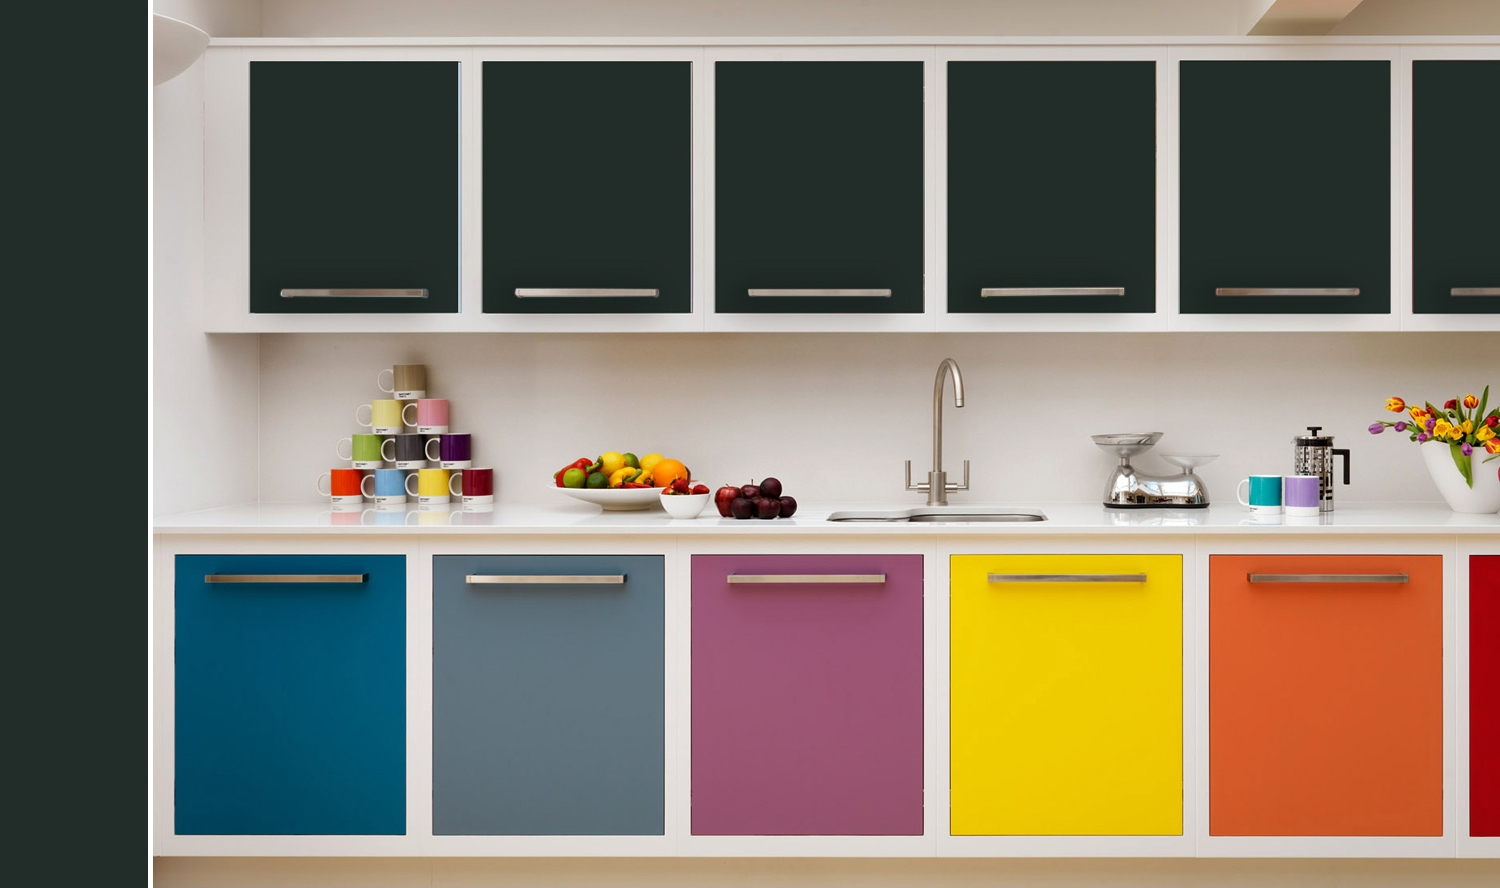 Sonata Range of Laminates For Kitchen - Sundek International